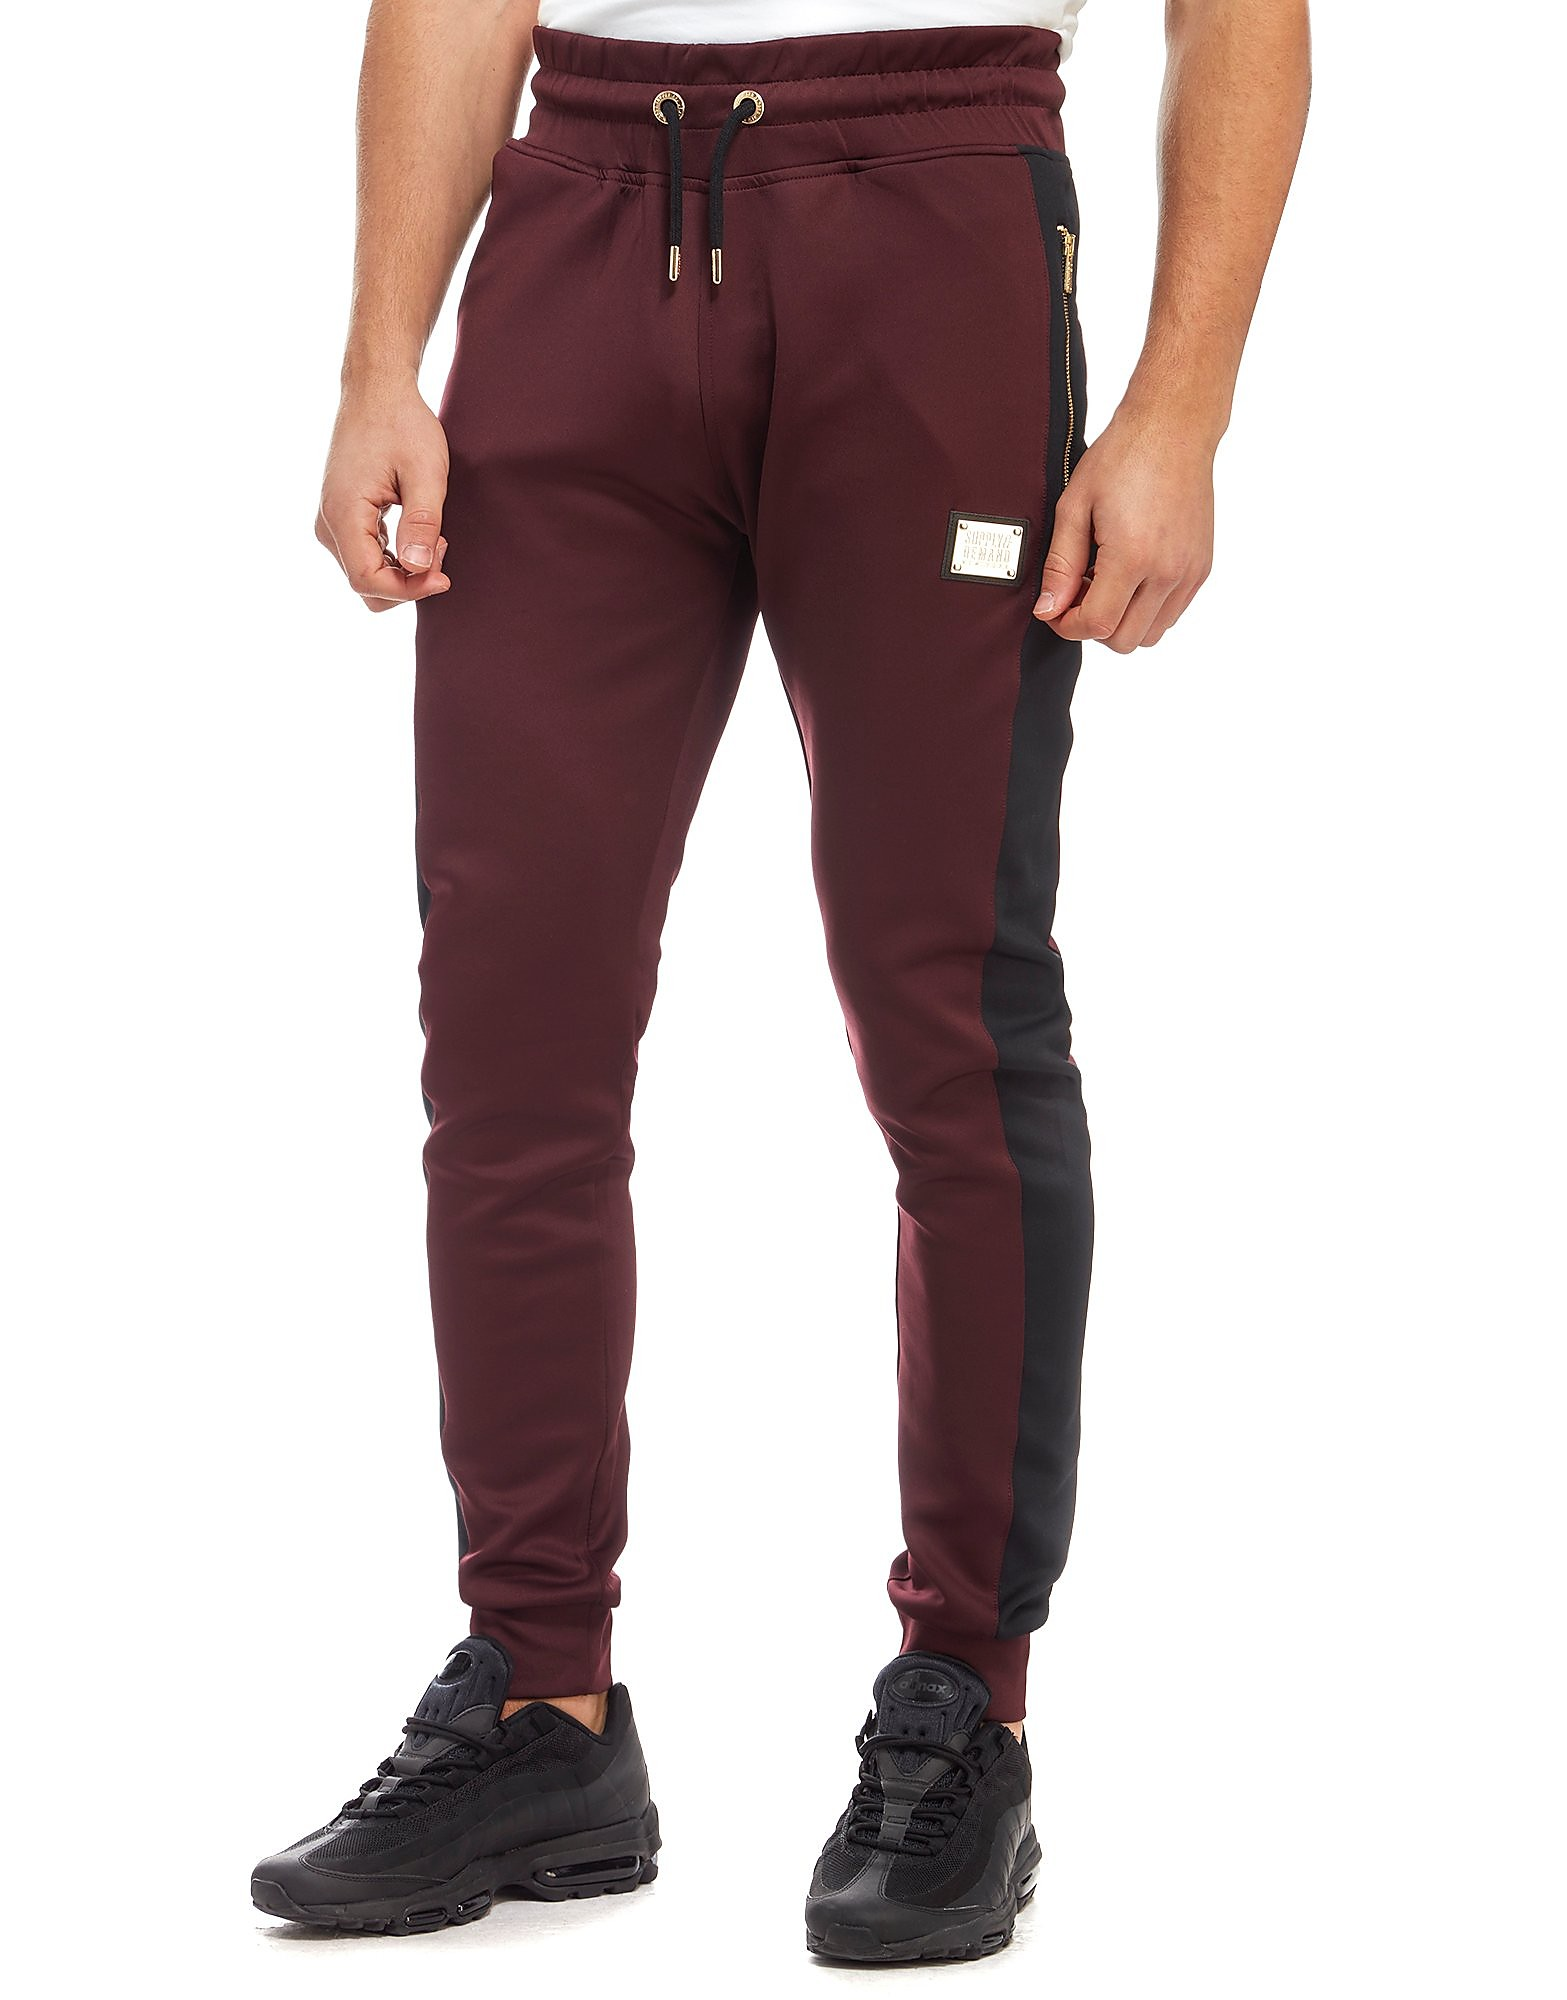 Supply & Demand Sky Joggers - Only at JD, Burgundy